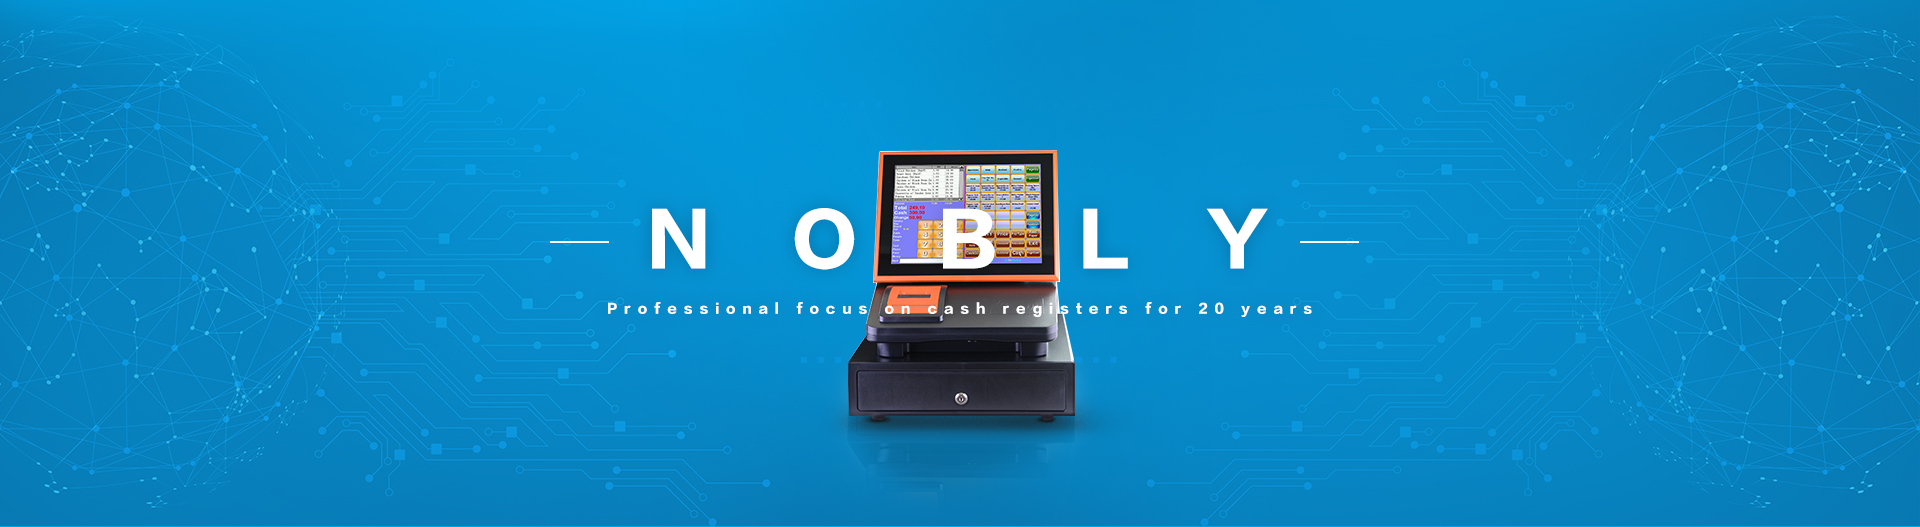 Professional News Electronic Cash Register For Restaurant - Nobly-NOBLY Technology